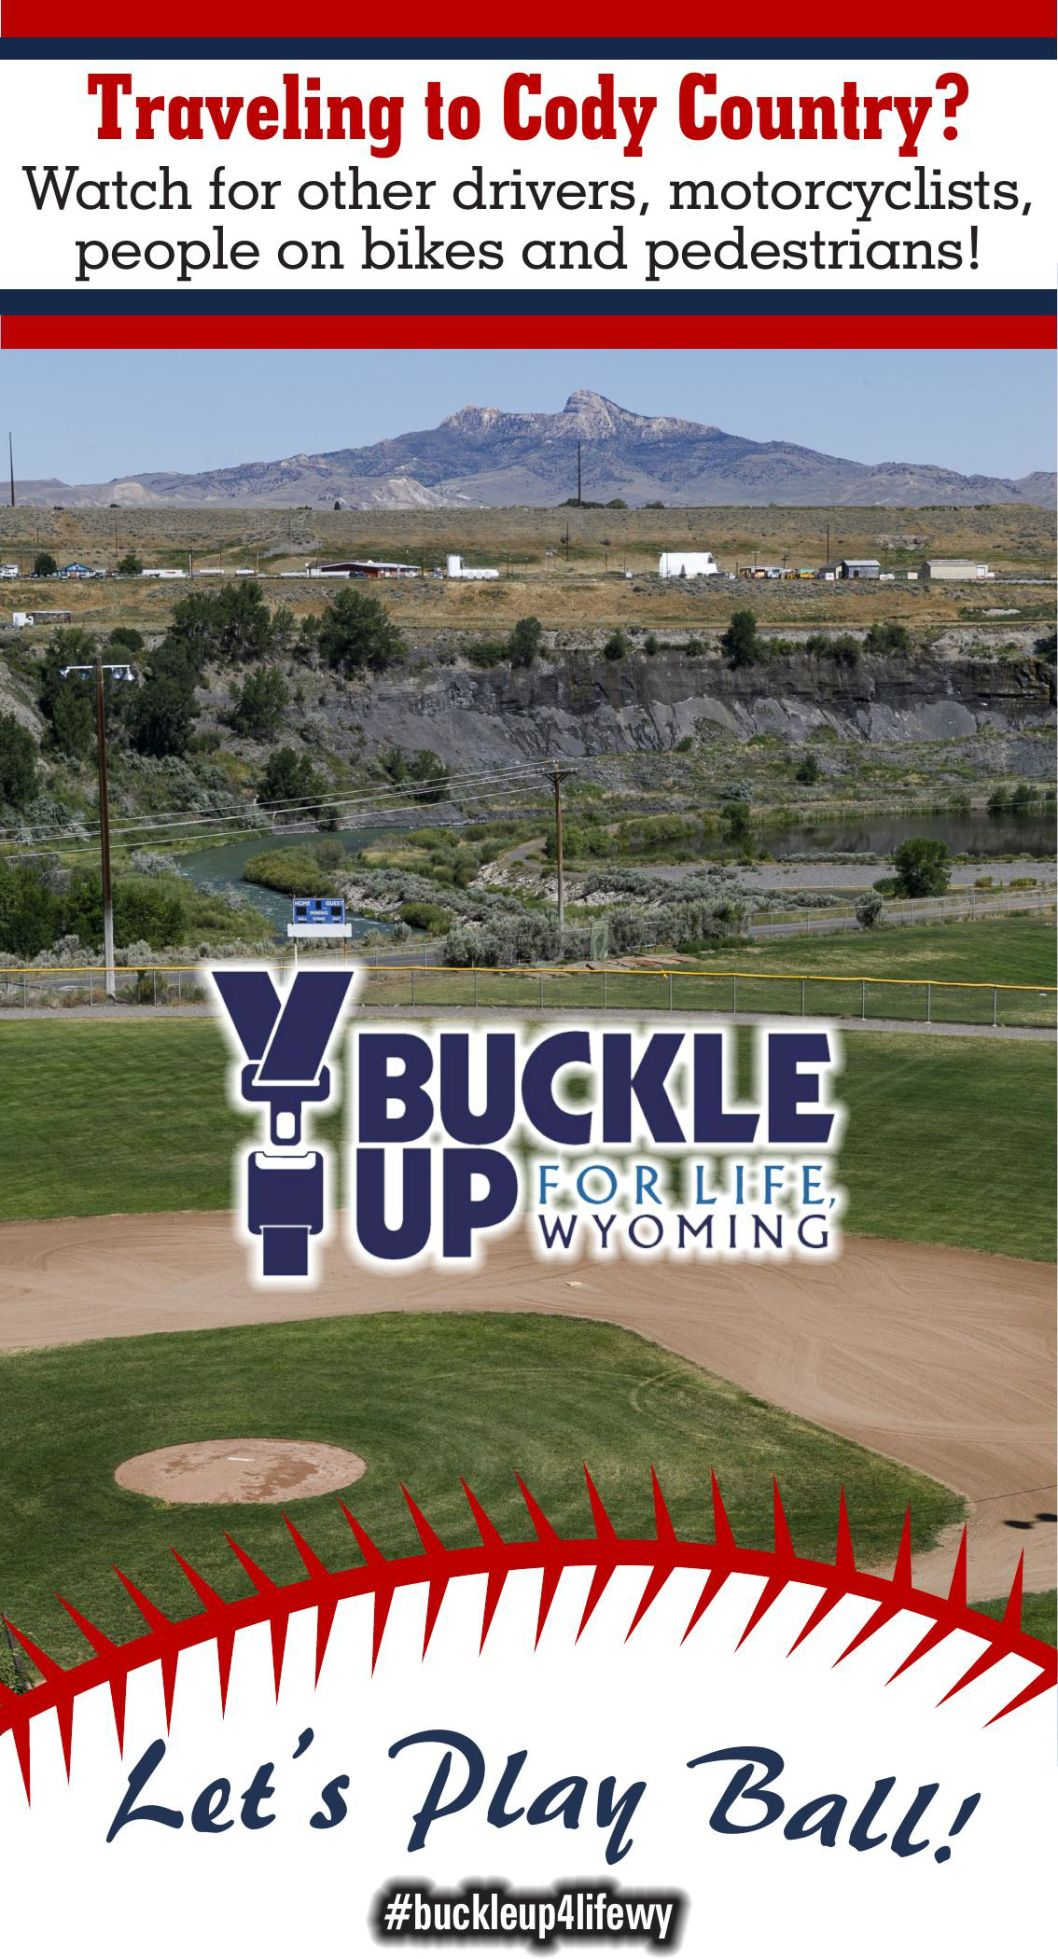 009699_wydot_cody_cubs_buckle_up_services